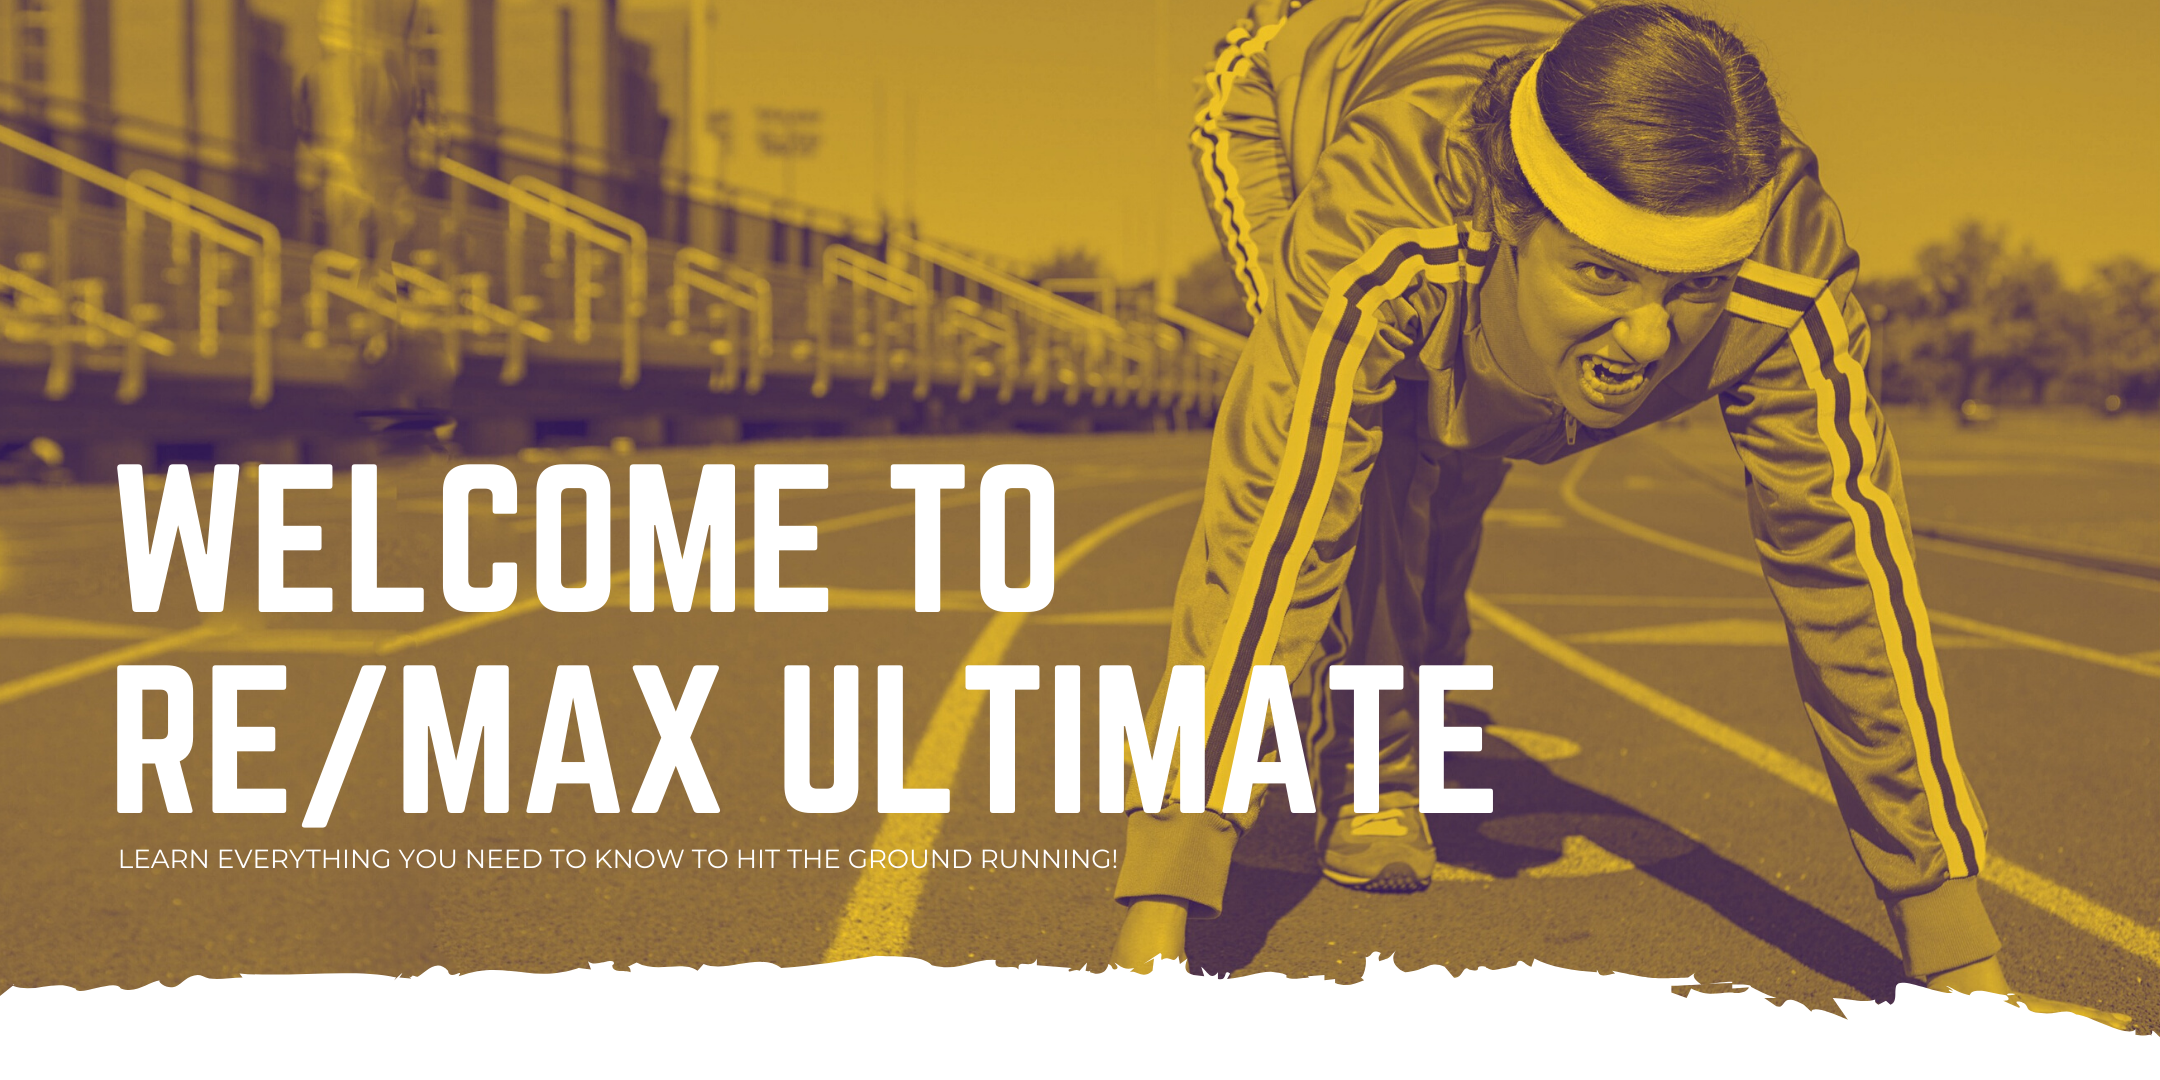 Welcome to RE/MAX Ultimate